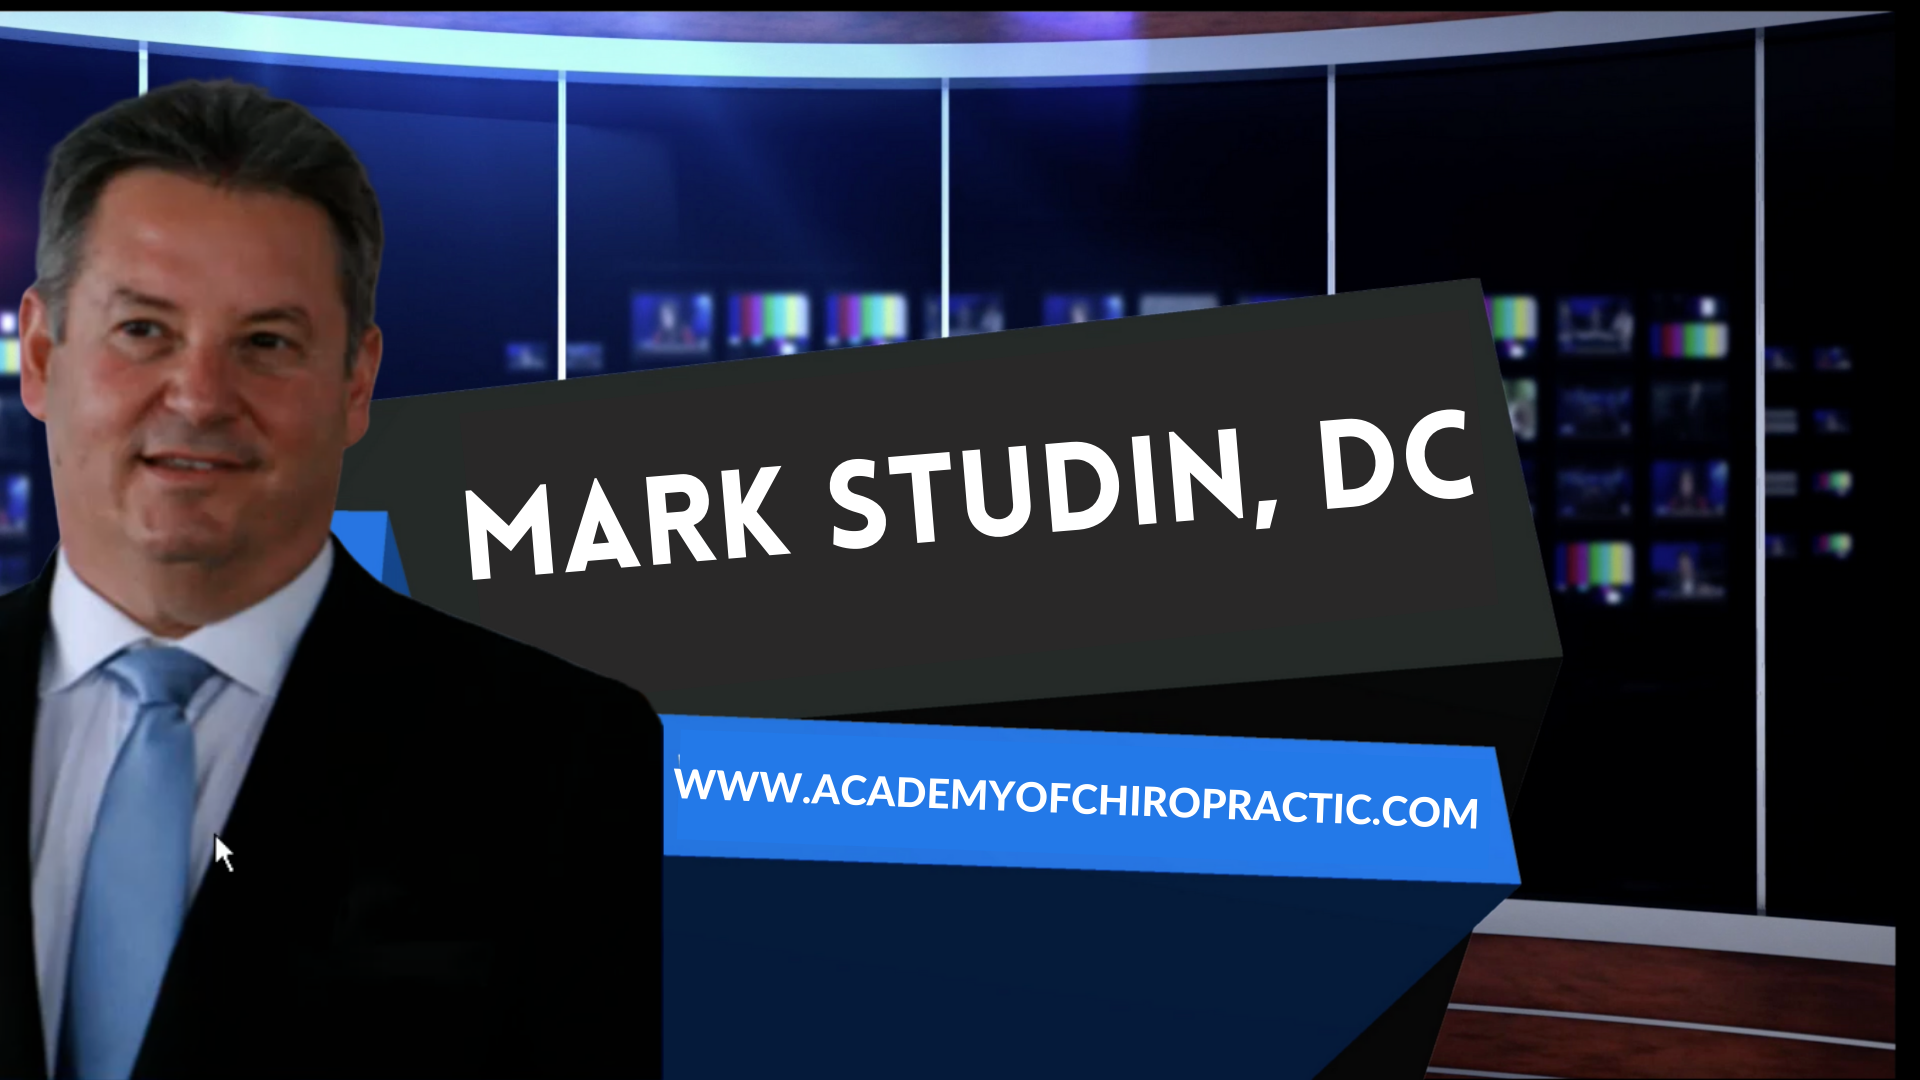 Mark Studin, DC Thumb